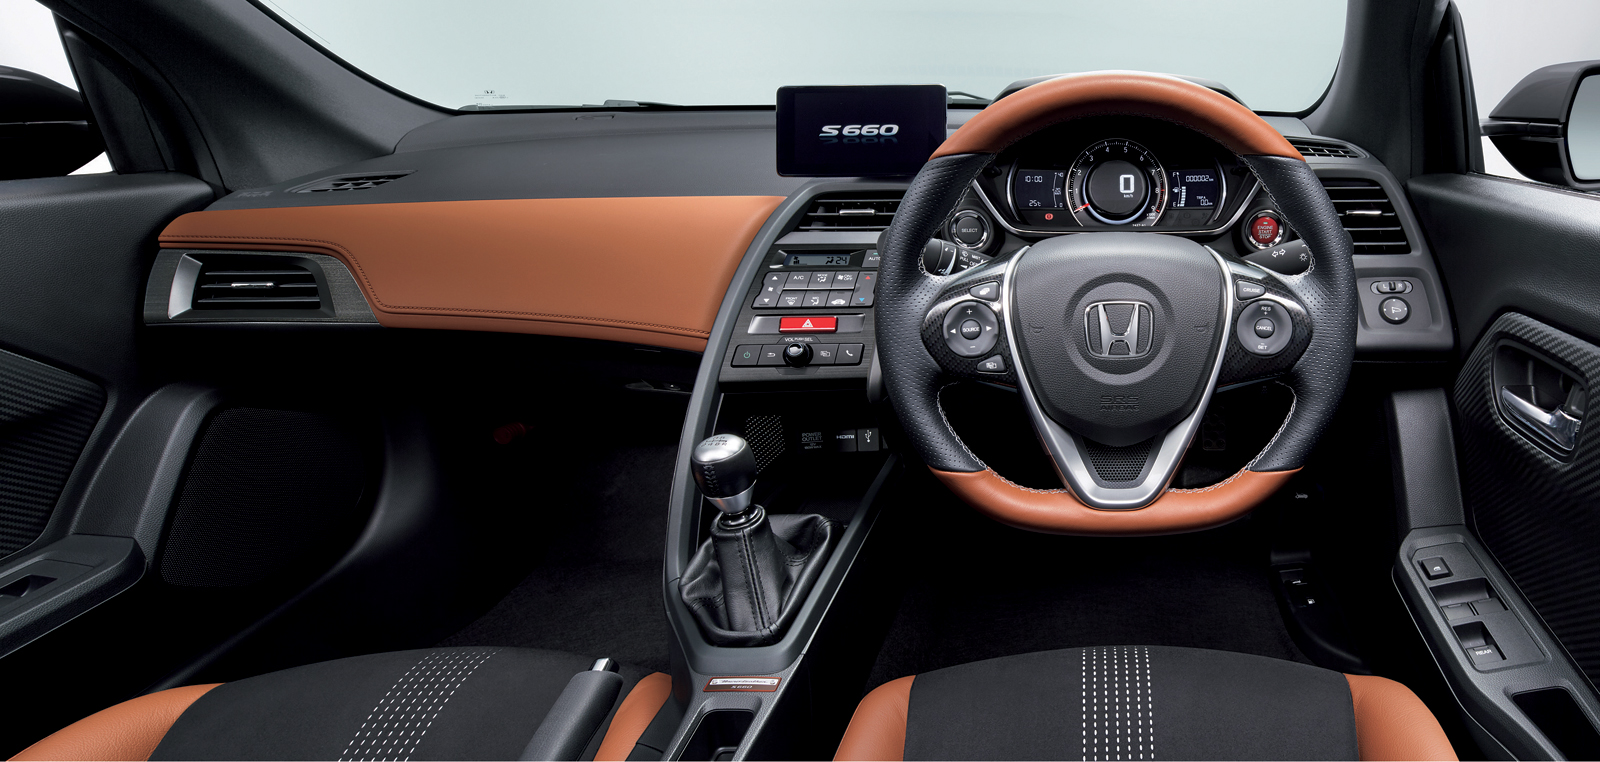 Honda_S660_Bruno_Leather_Edition_04